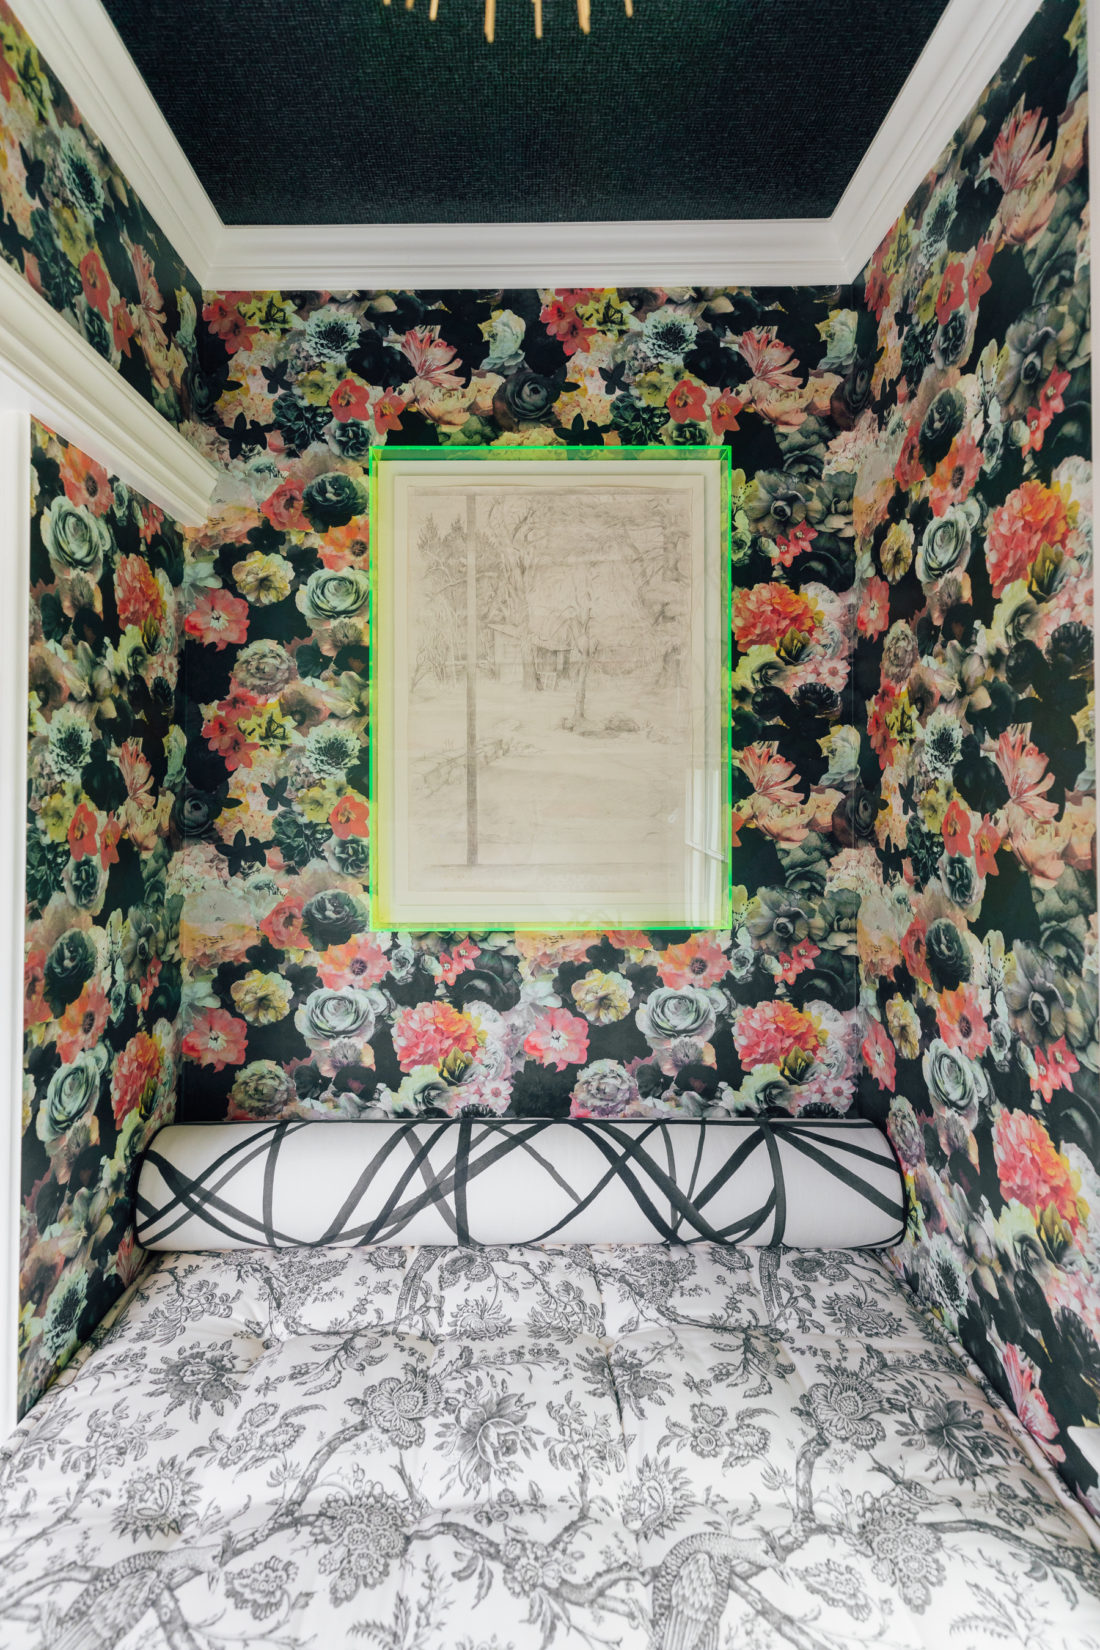 A historic painting framed in a green neon acrylic frame in the snuggle nook of Eva Amurri Martino's Connecticut home